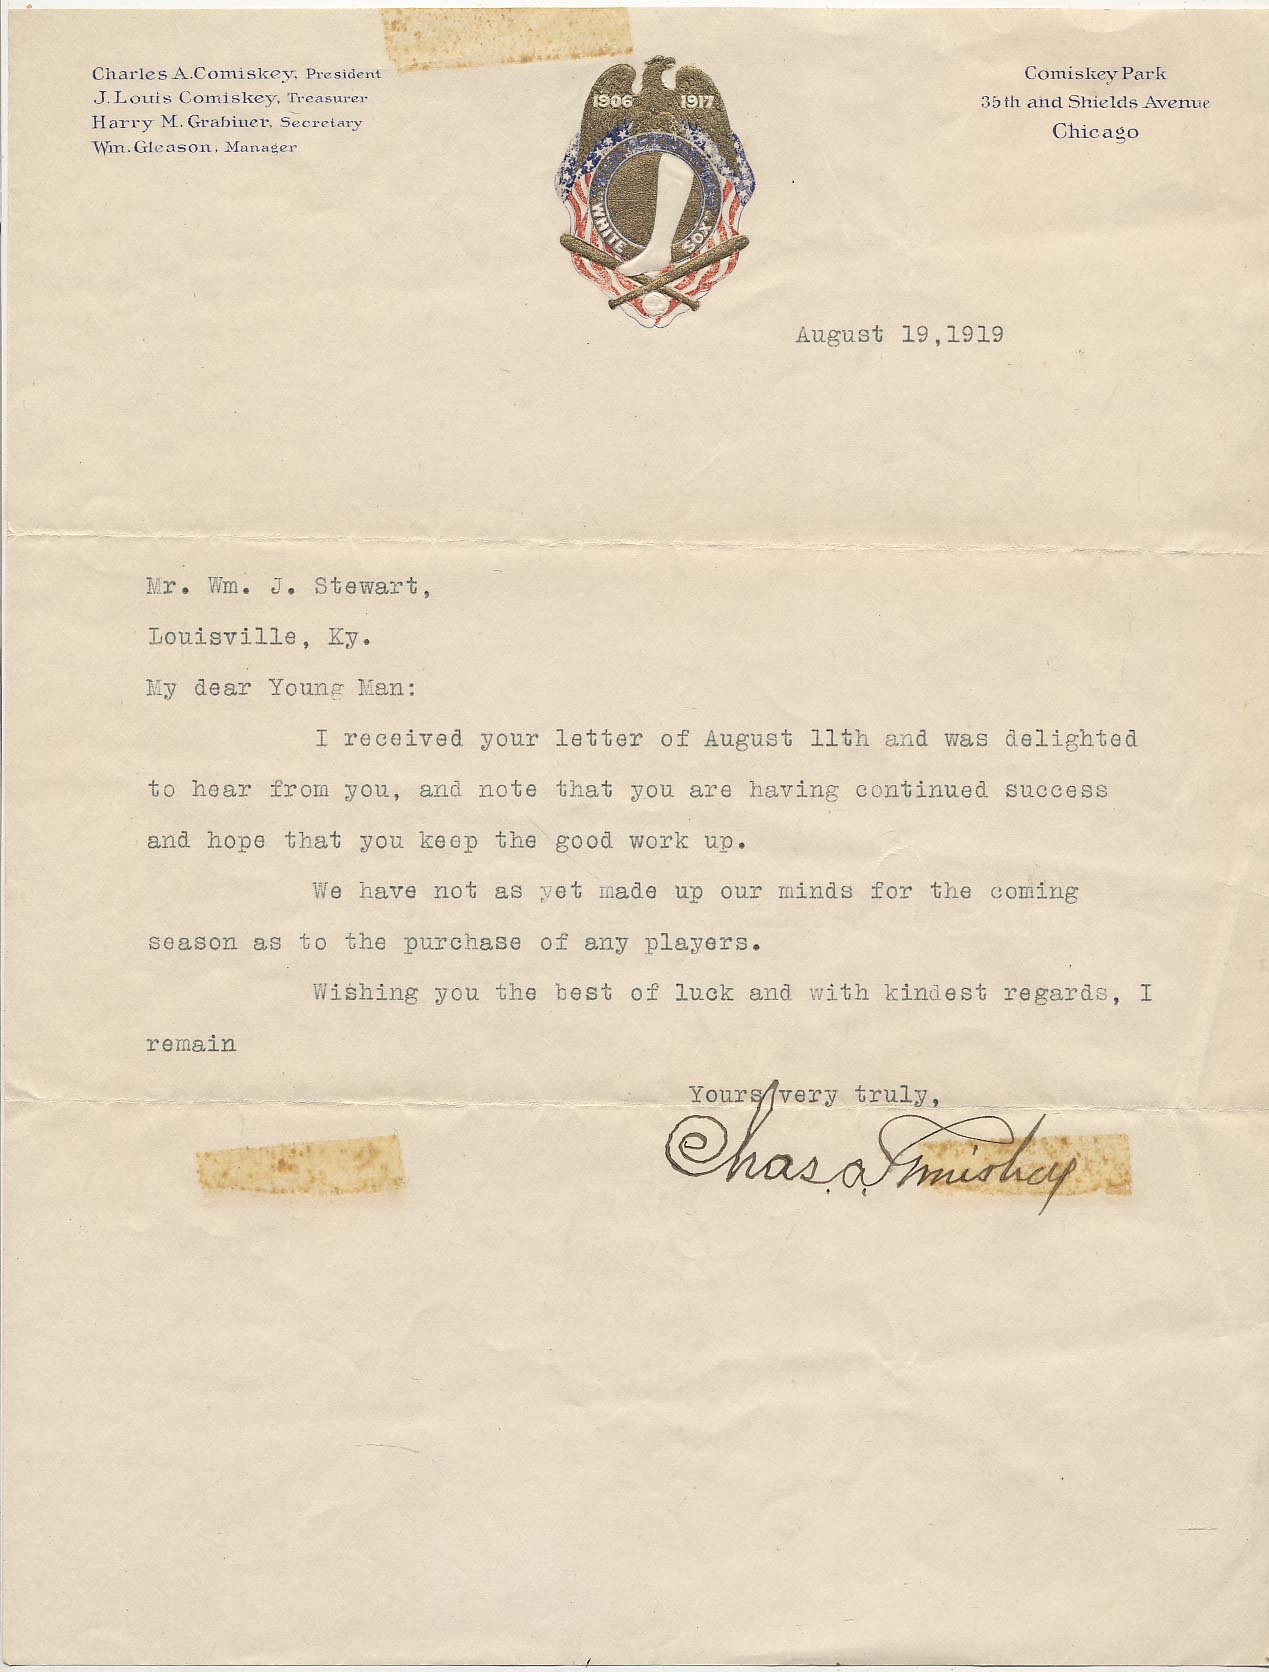 Lot #6  Letter  Comiskey, Charles (from 1919!) Cond: 9